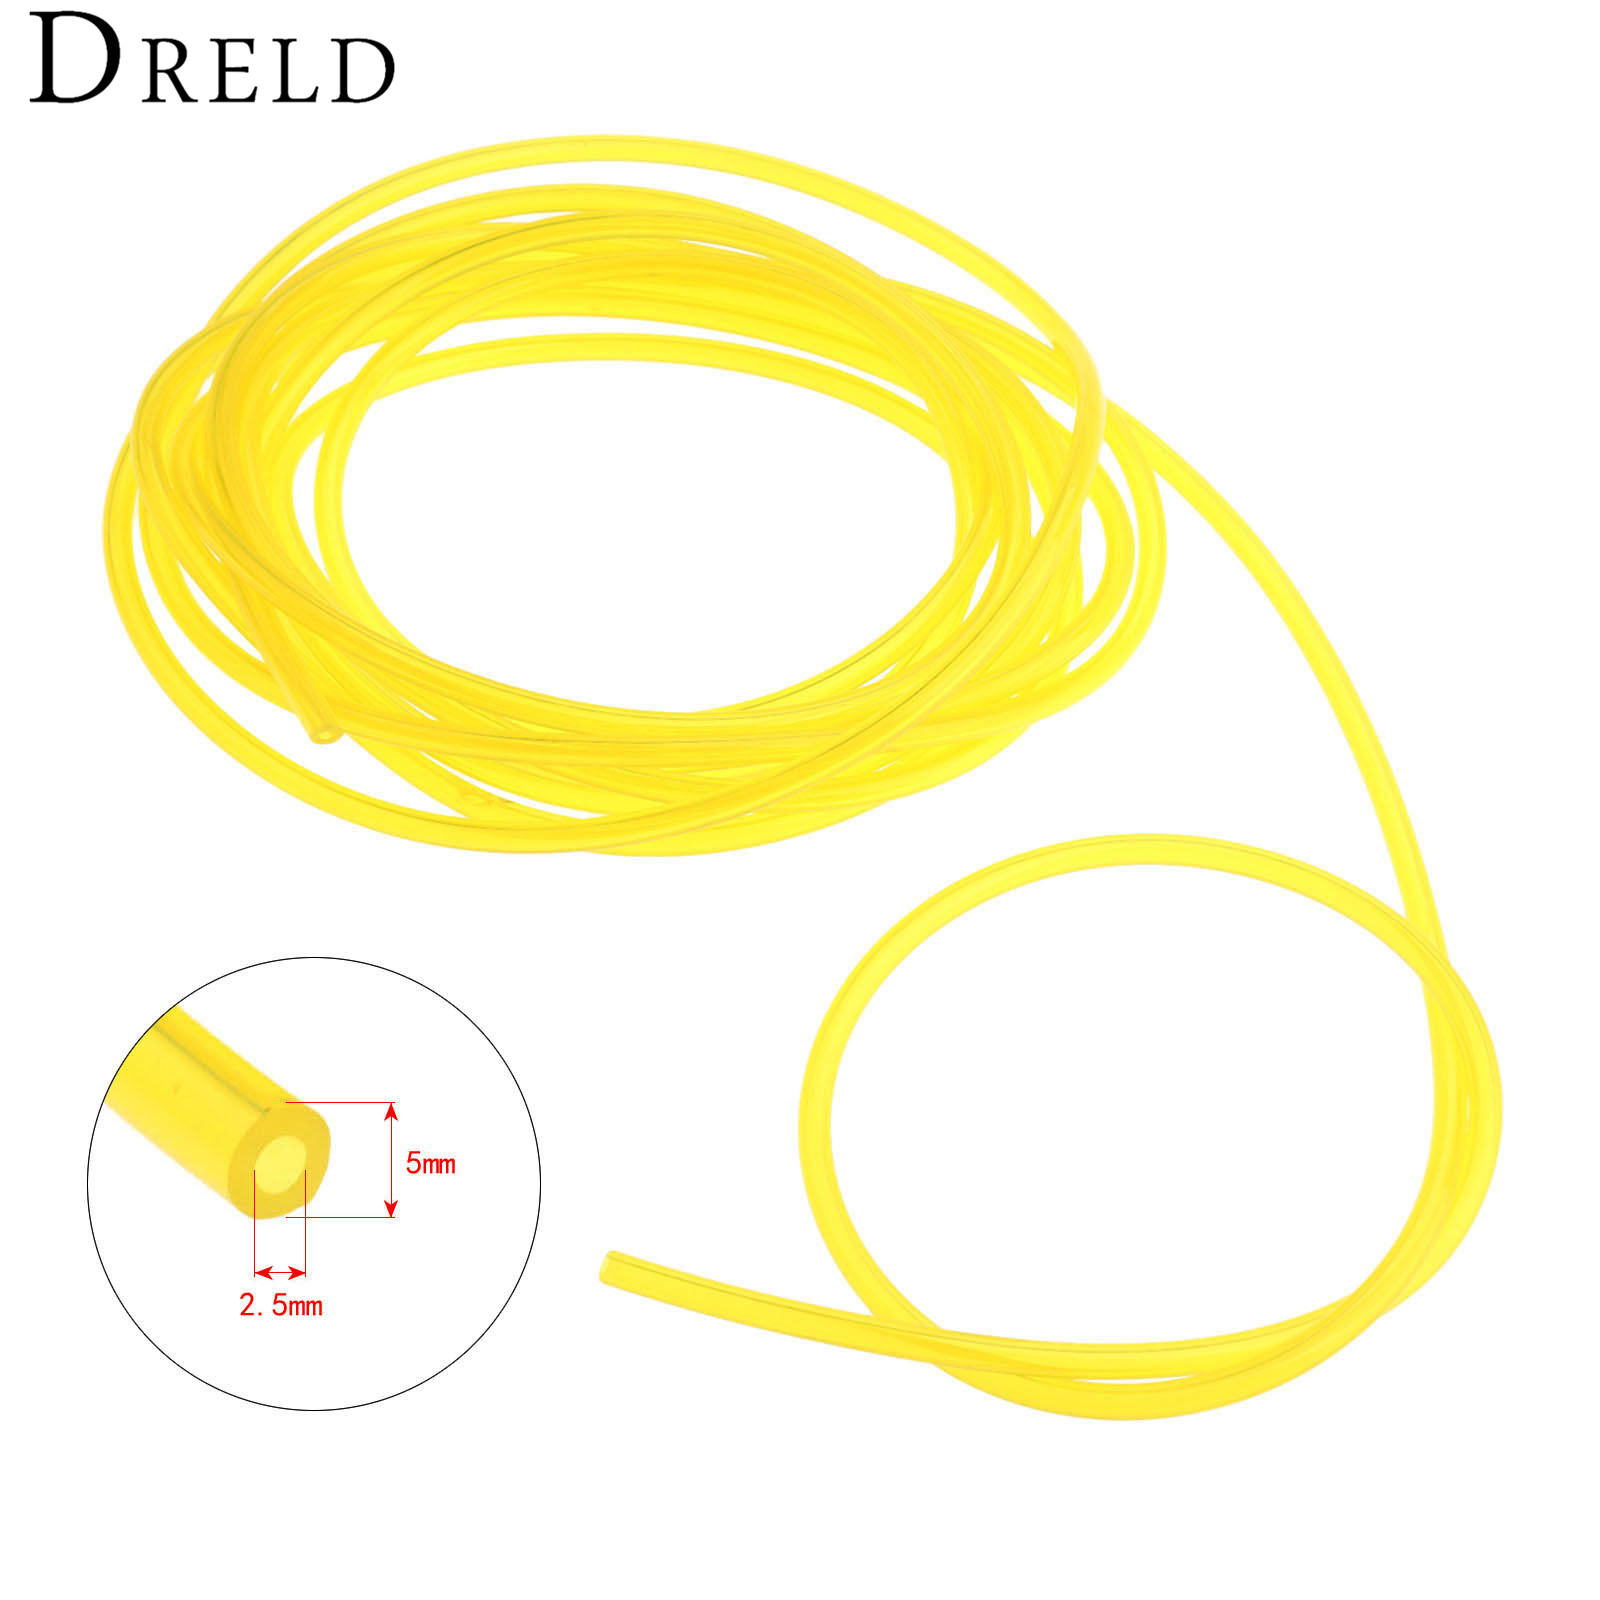 DRELD 5M Length Gas Engine Machine Oil Pipe Fuel Hose Diameter 2.5mm*5mm For Trimmer Chainsaw Garden Tool Parts 6617 fuel gas line pipe hose for poulan craftsman weedeater 530069216 trimmer chainsaw blower yellow fuel line 2 5mm x 10m